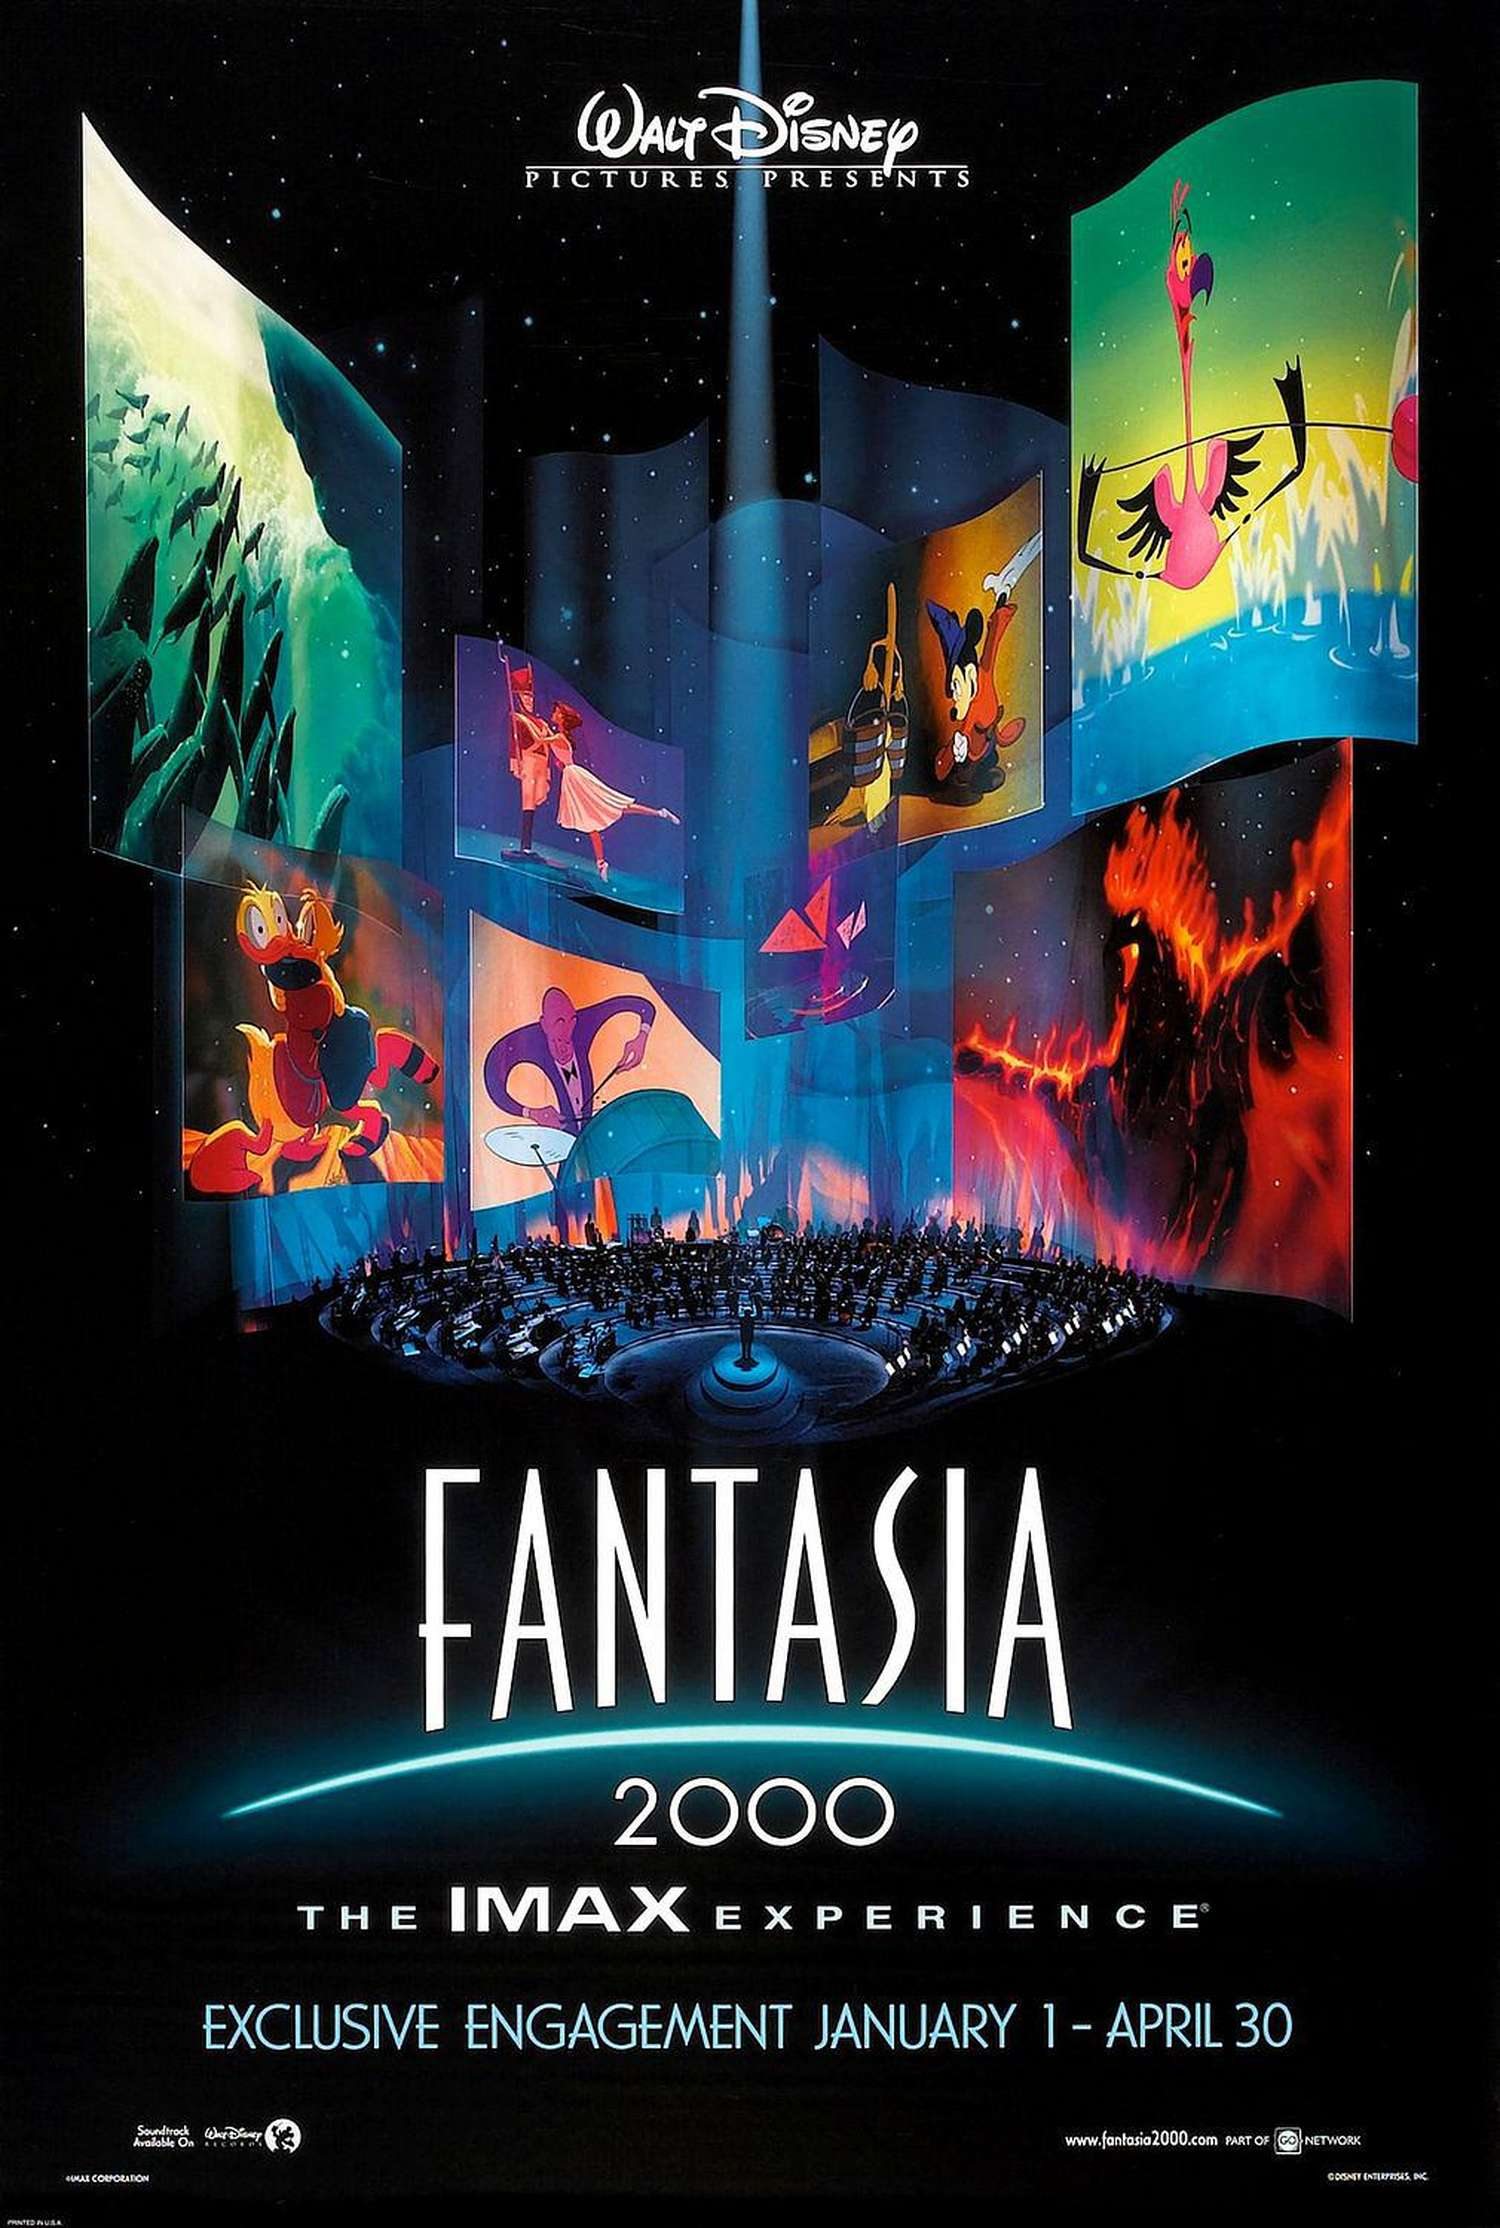 fantasia 2000 disney wiki fandom powered by wikia